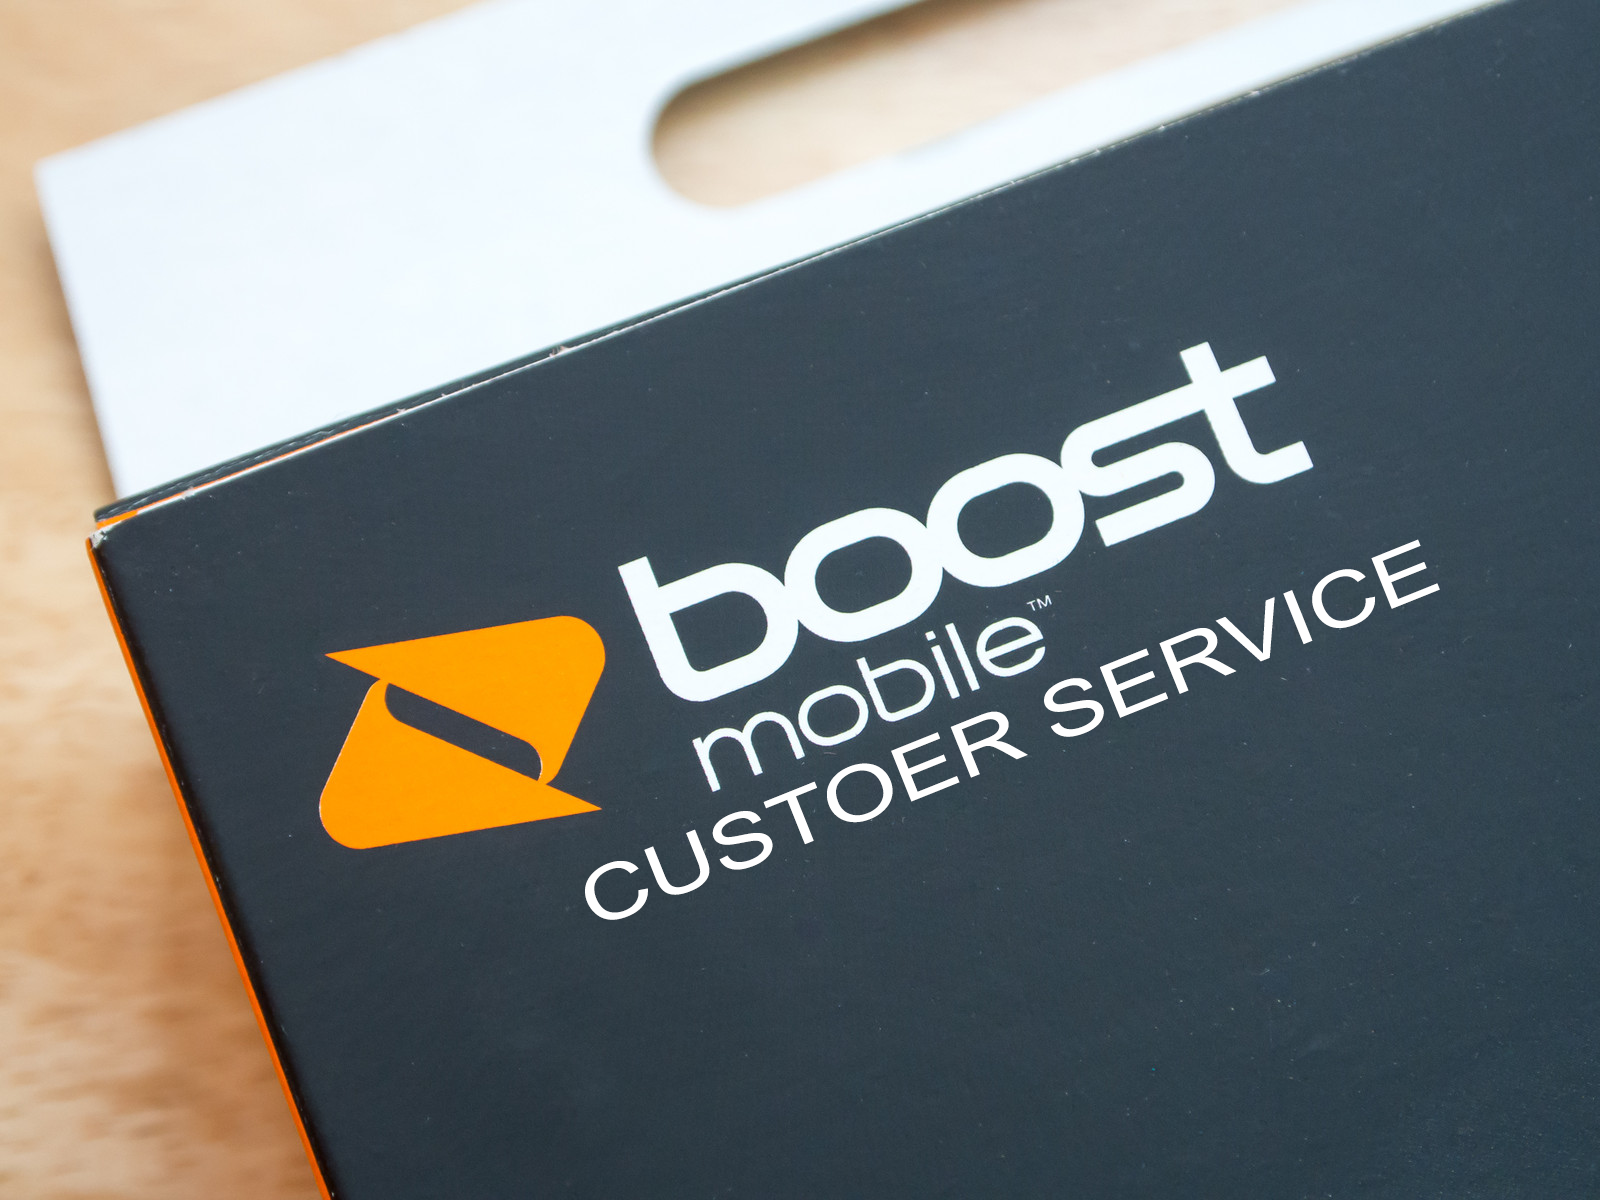 customer relations resume%0A boost mobile customers service